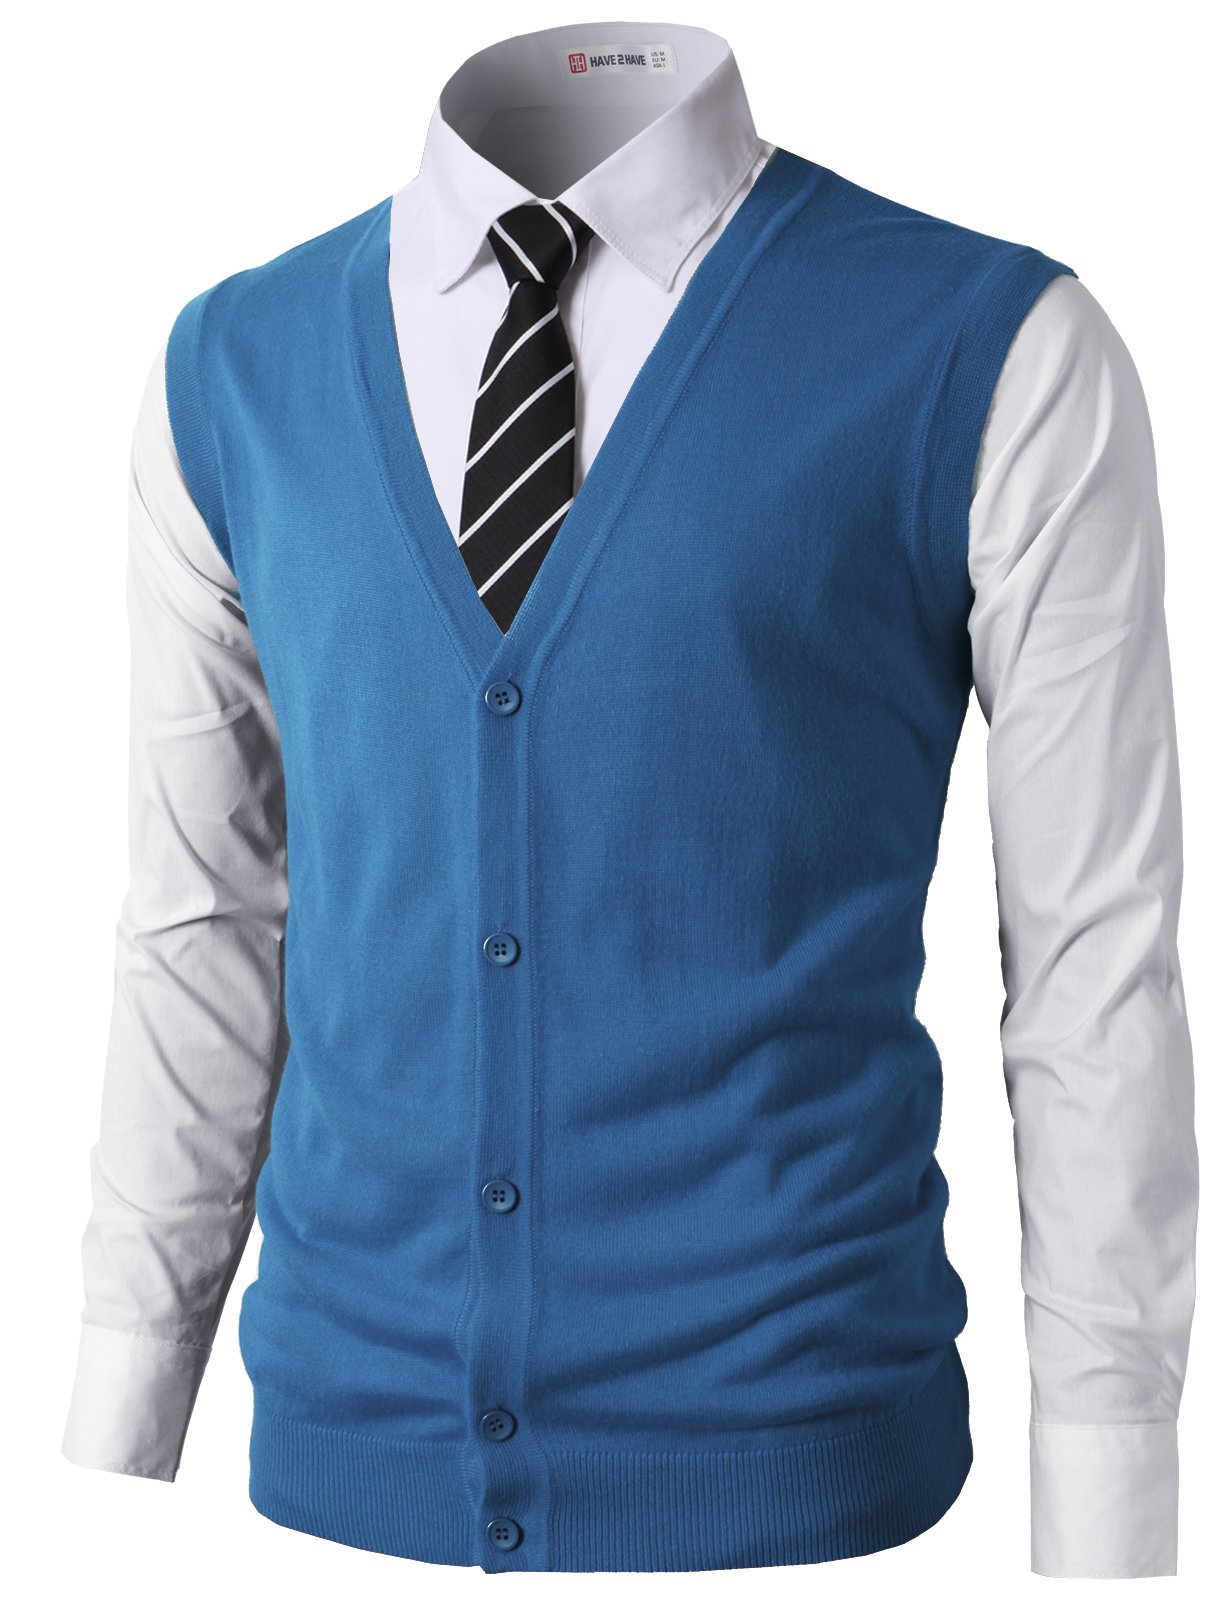 H2H Men Fashion Slim Fit Knitted V-Neck Button-Down Vests Of Various Colors Steelblue US L/Asia XL (CMOV038)